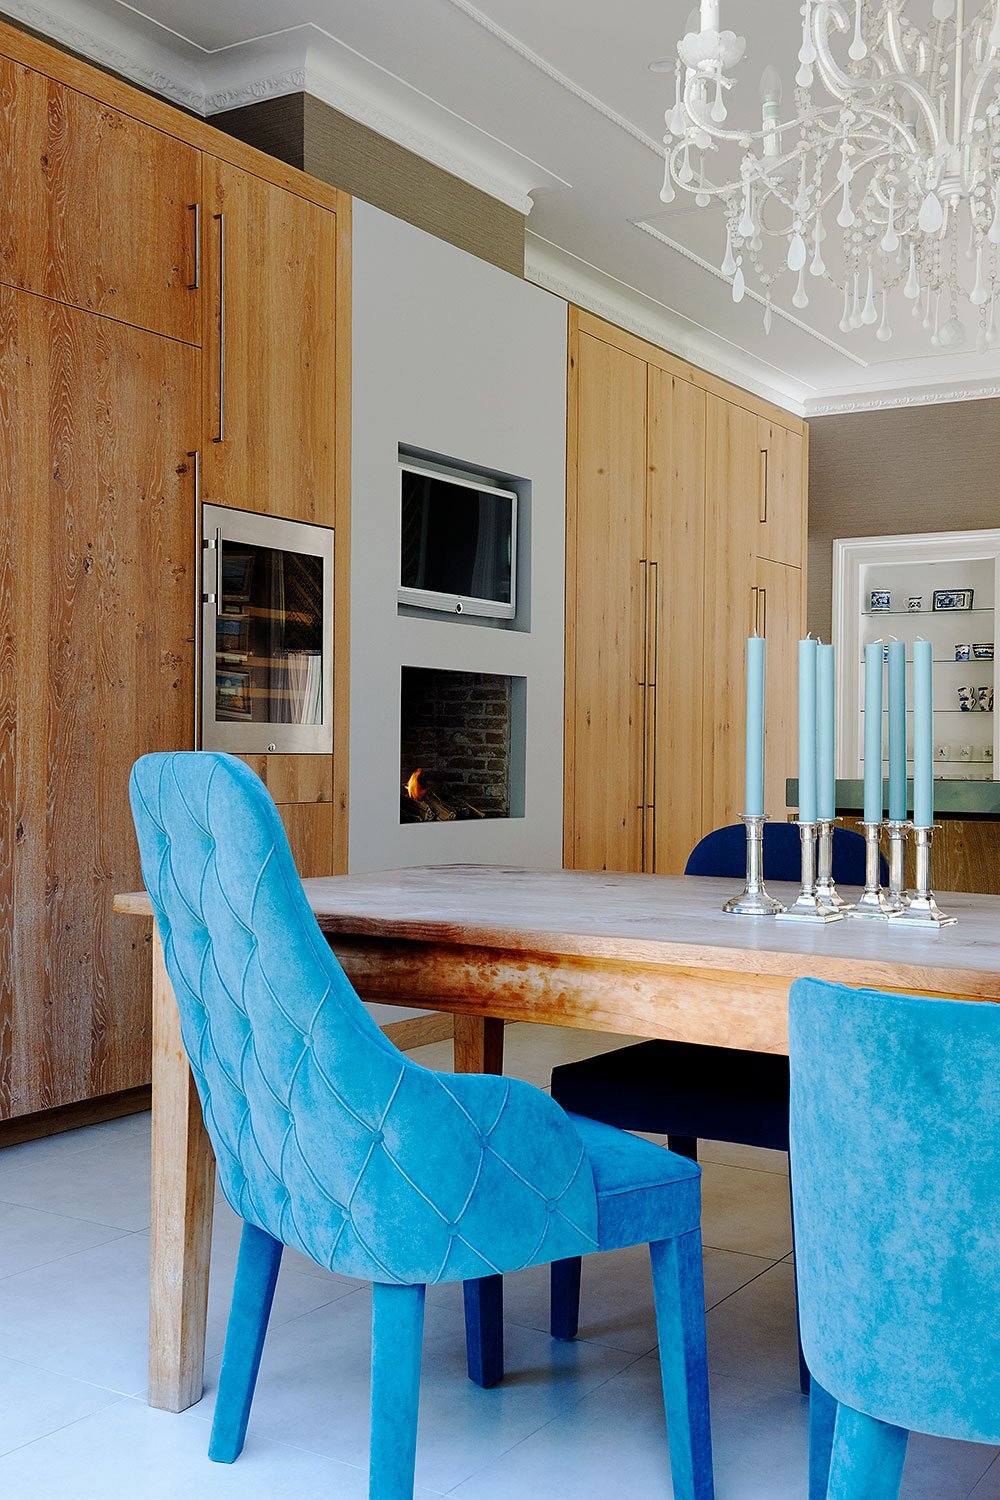 dutch interior design blue chair kitchen